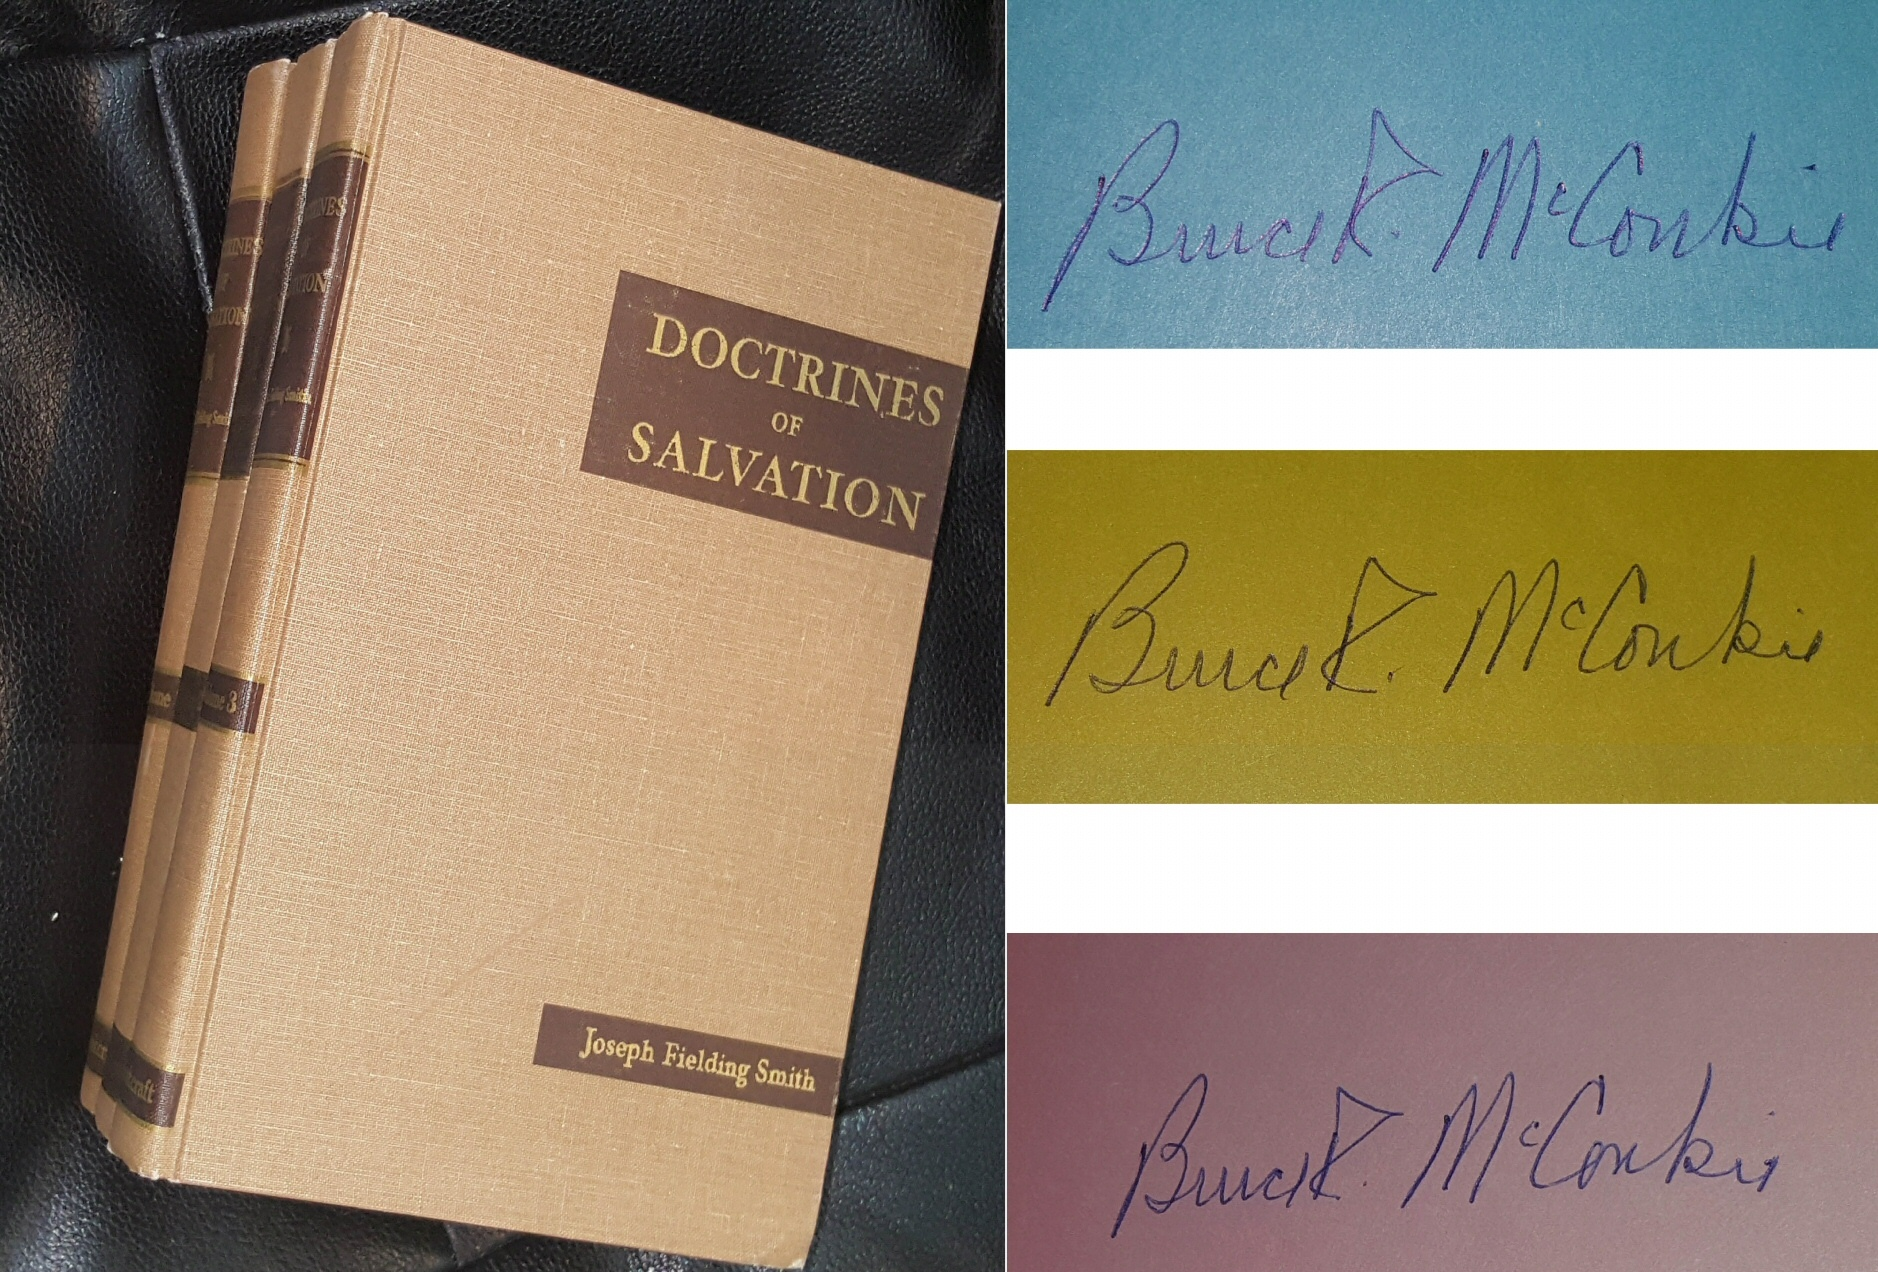 DOCTRINES OF SALVATION - SIGNED - Sermons and Writings of Joseph Fielding Smith, Smith, Joseph Fielding (compiled by Bruce R. McConkie)